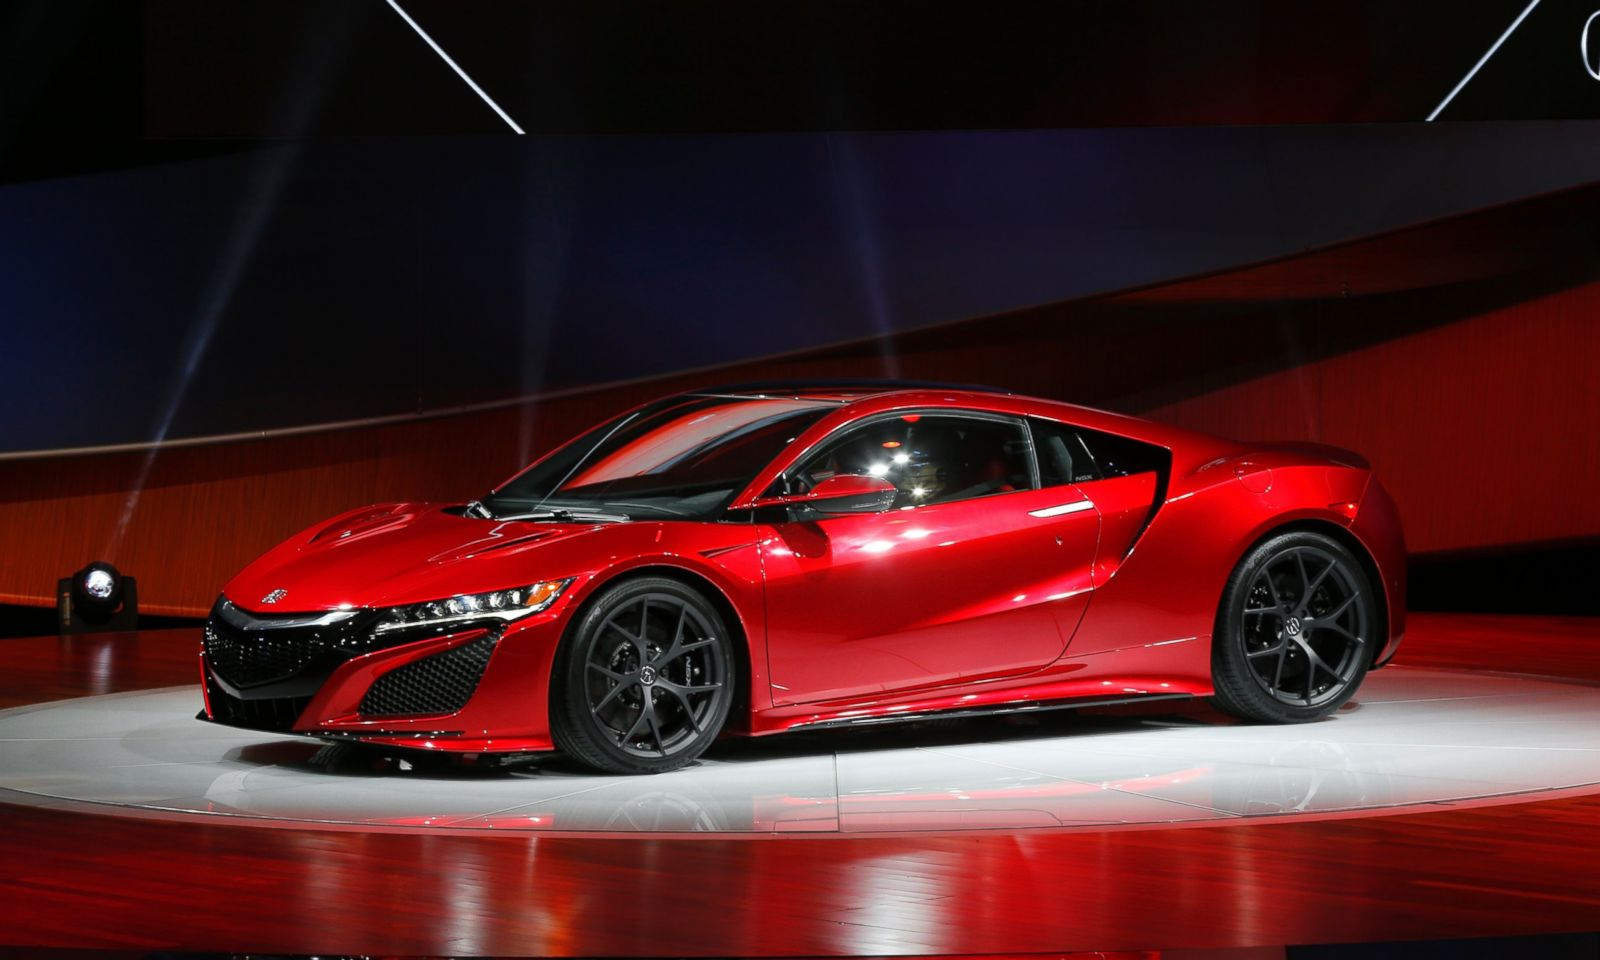 2016 Acura Nsx Supercar Picture The Coolest Most Expensive Or